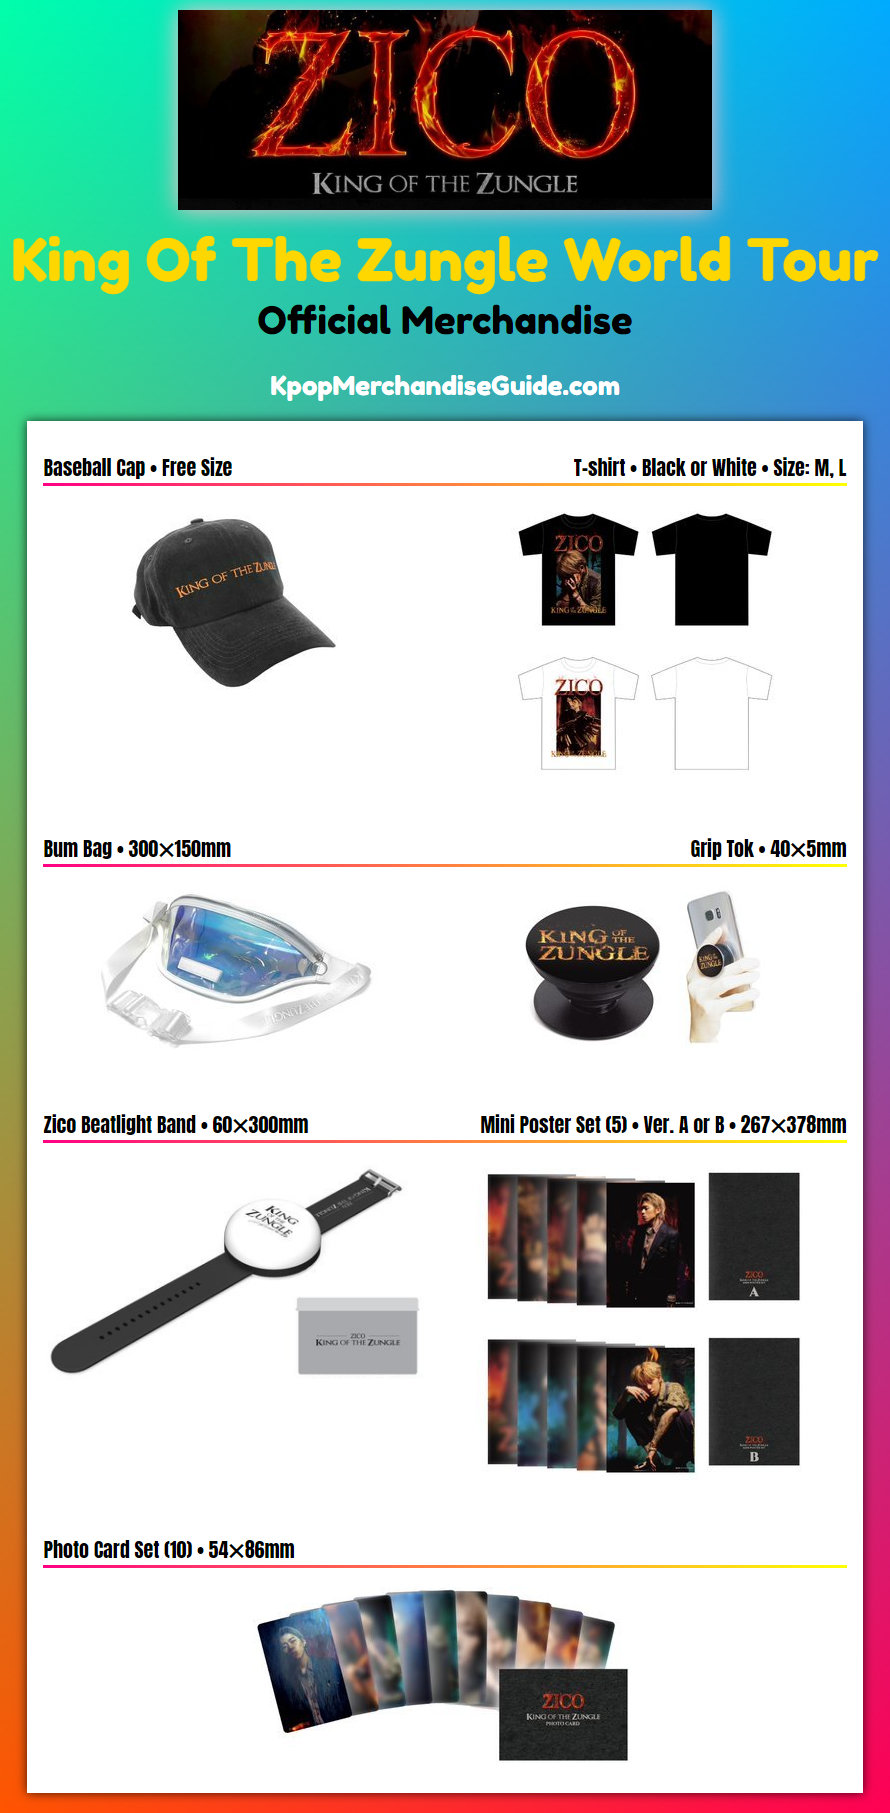 King Of The Zungle Concert Tour Merchandise